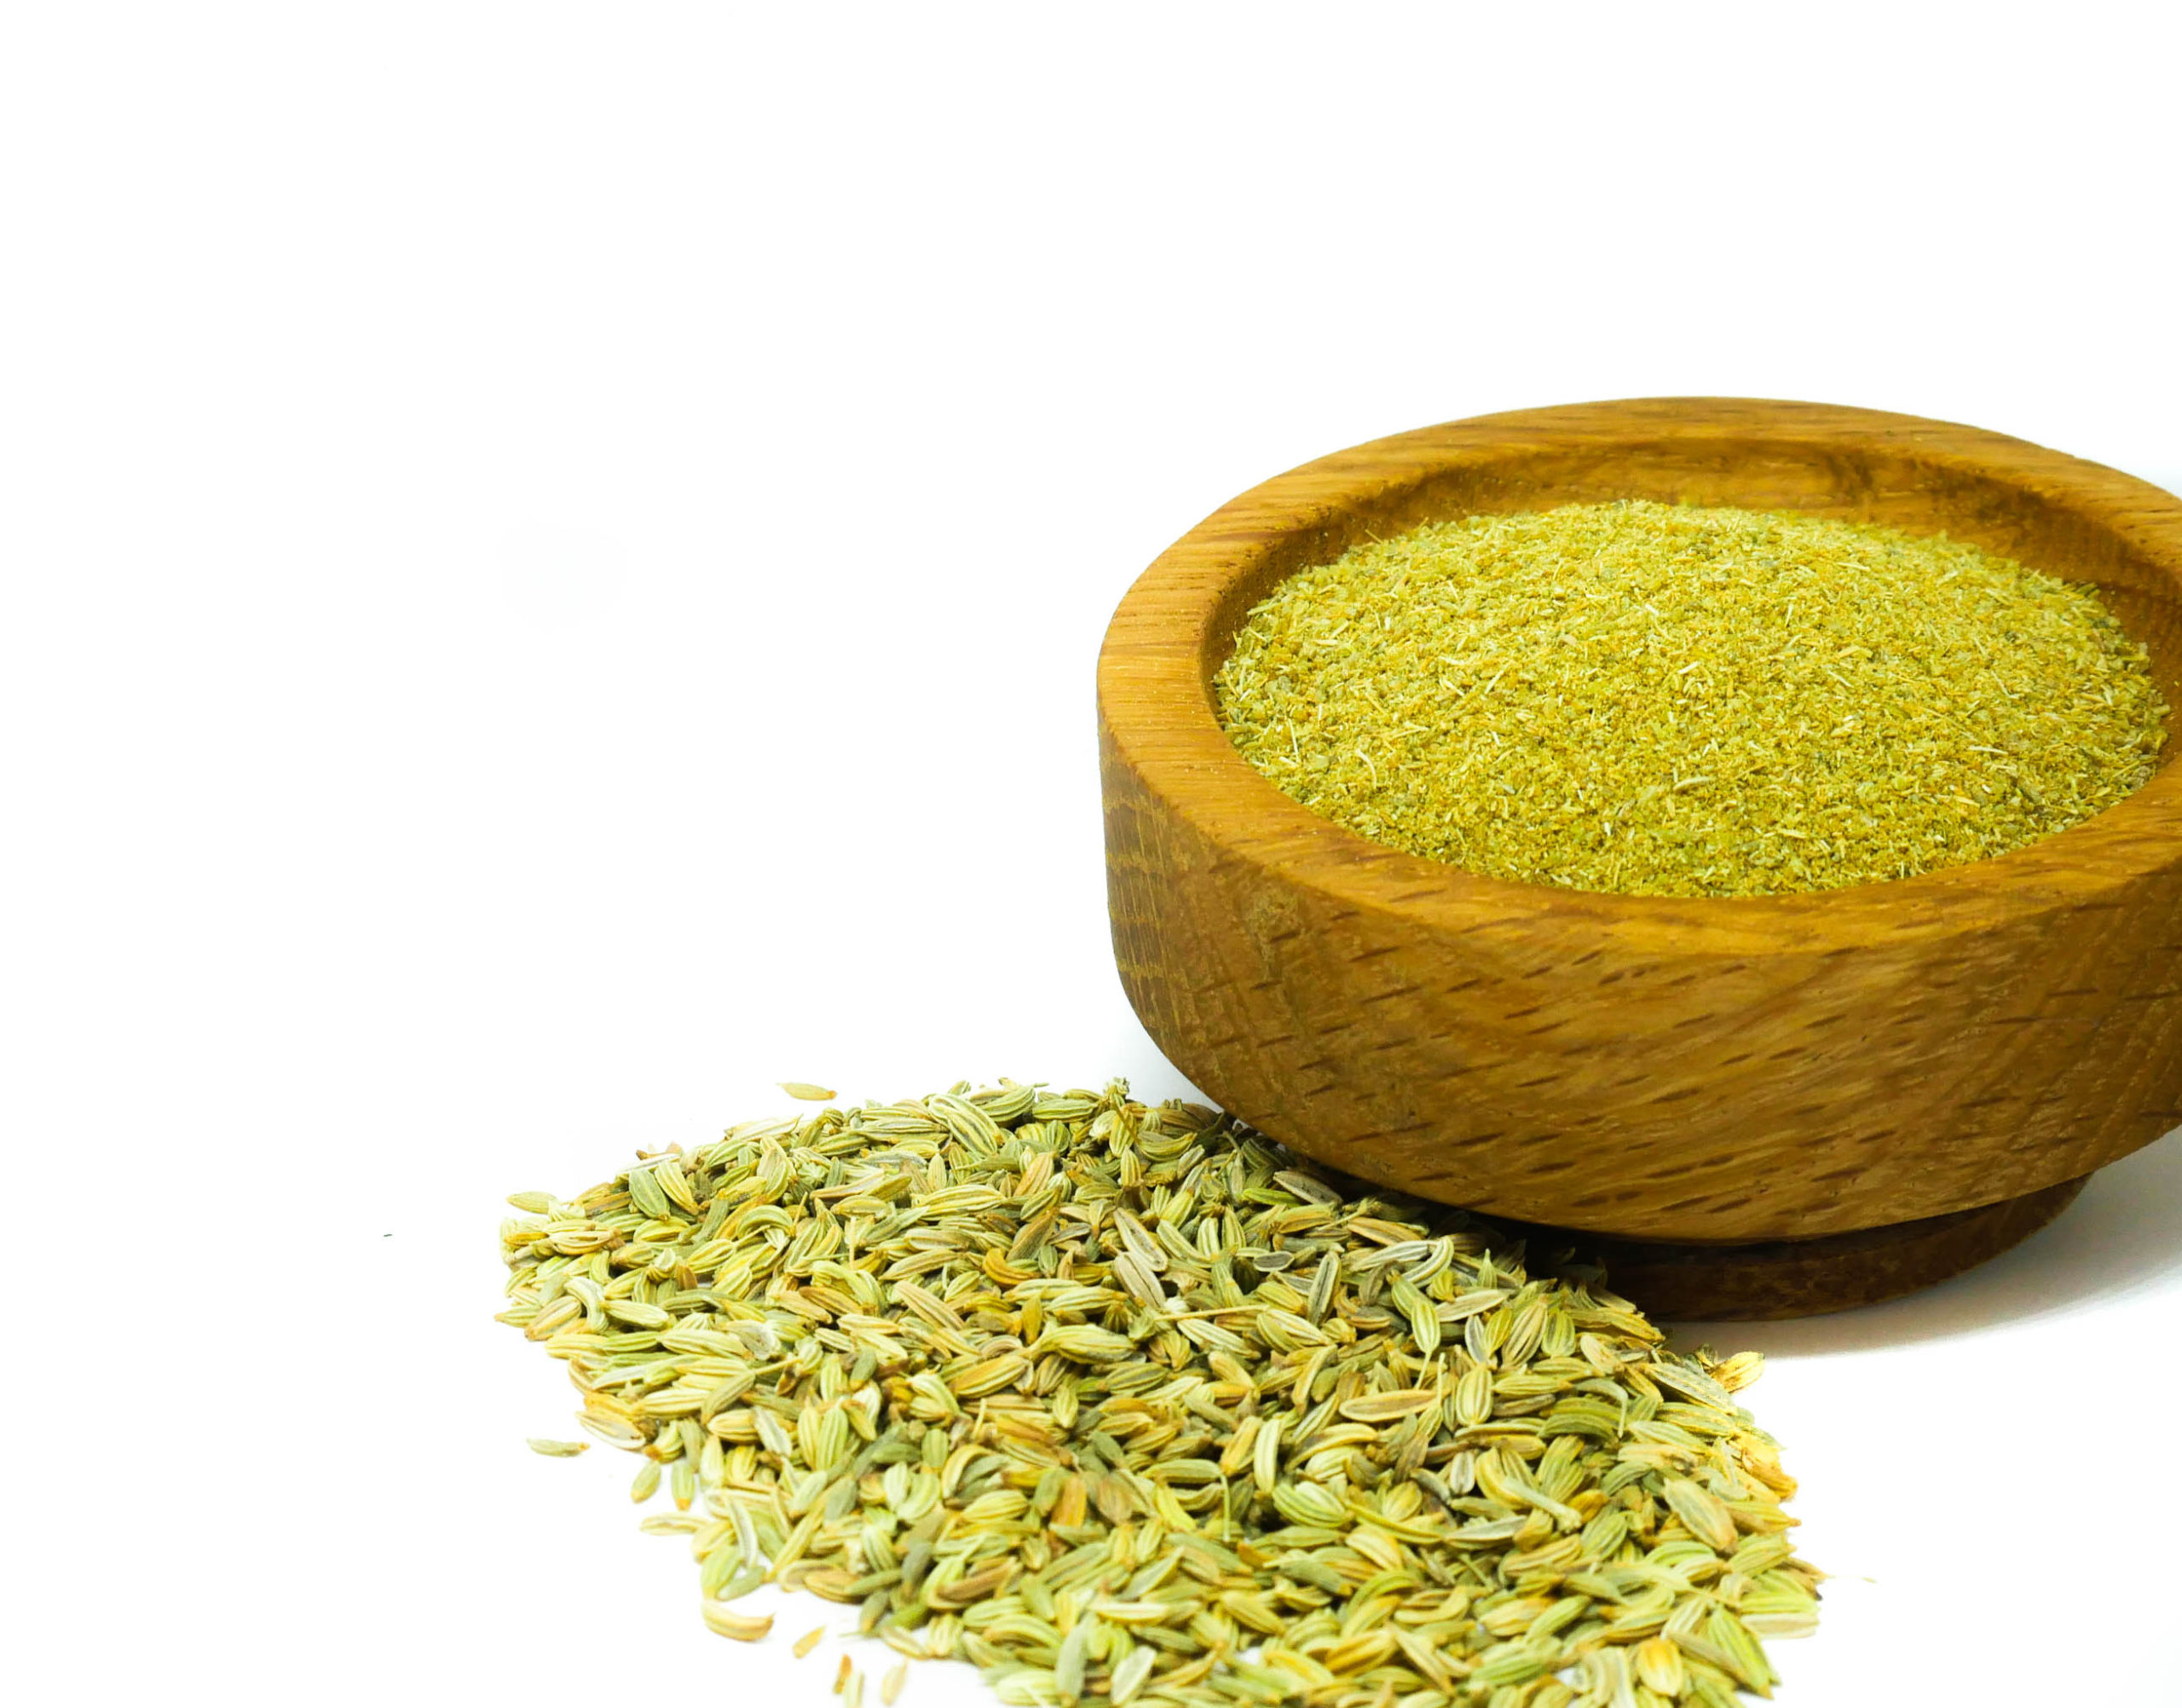 Whole and ground Fennel Seed from the Natural Spot